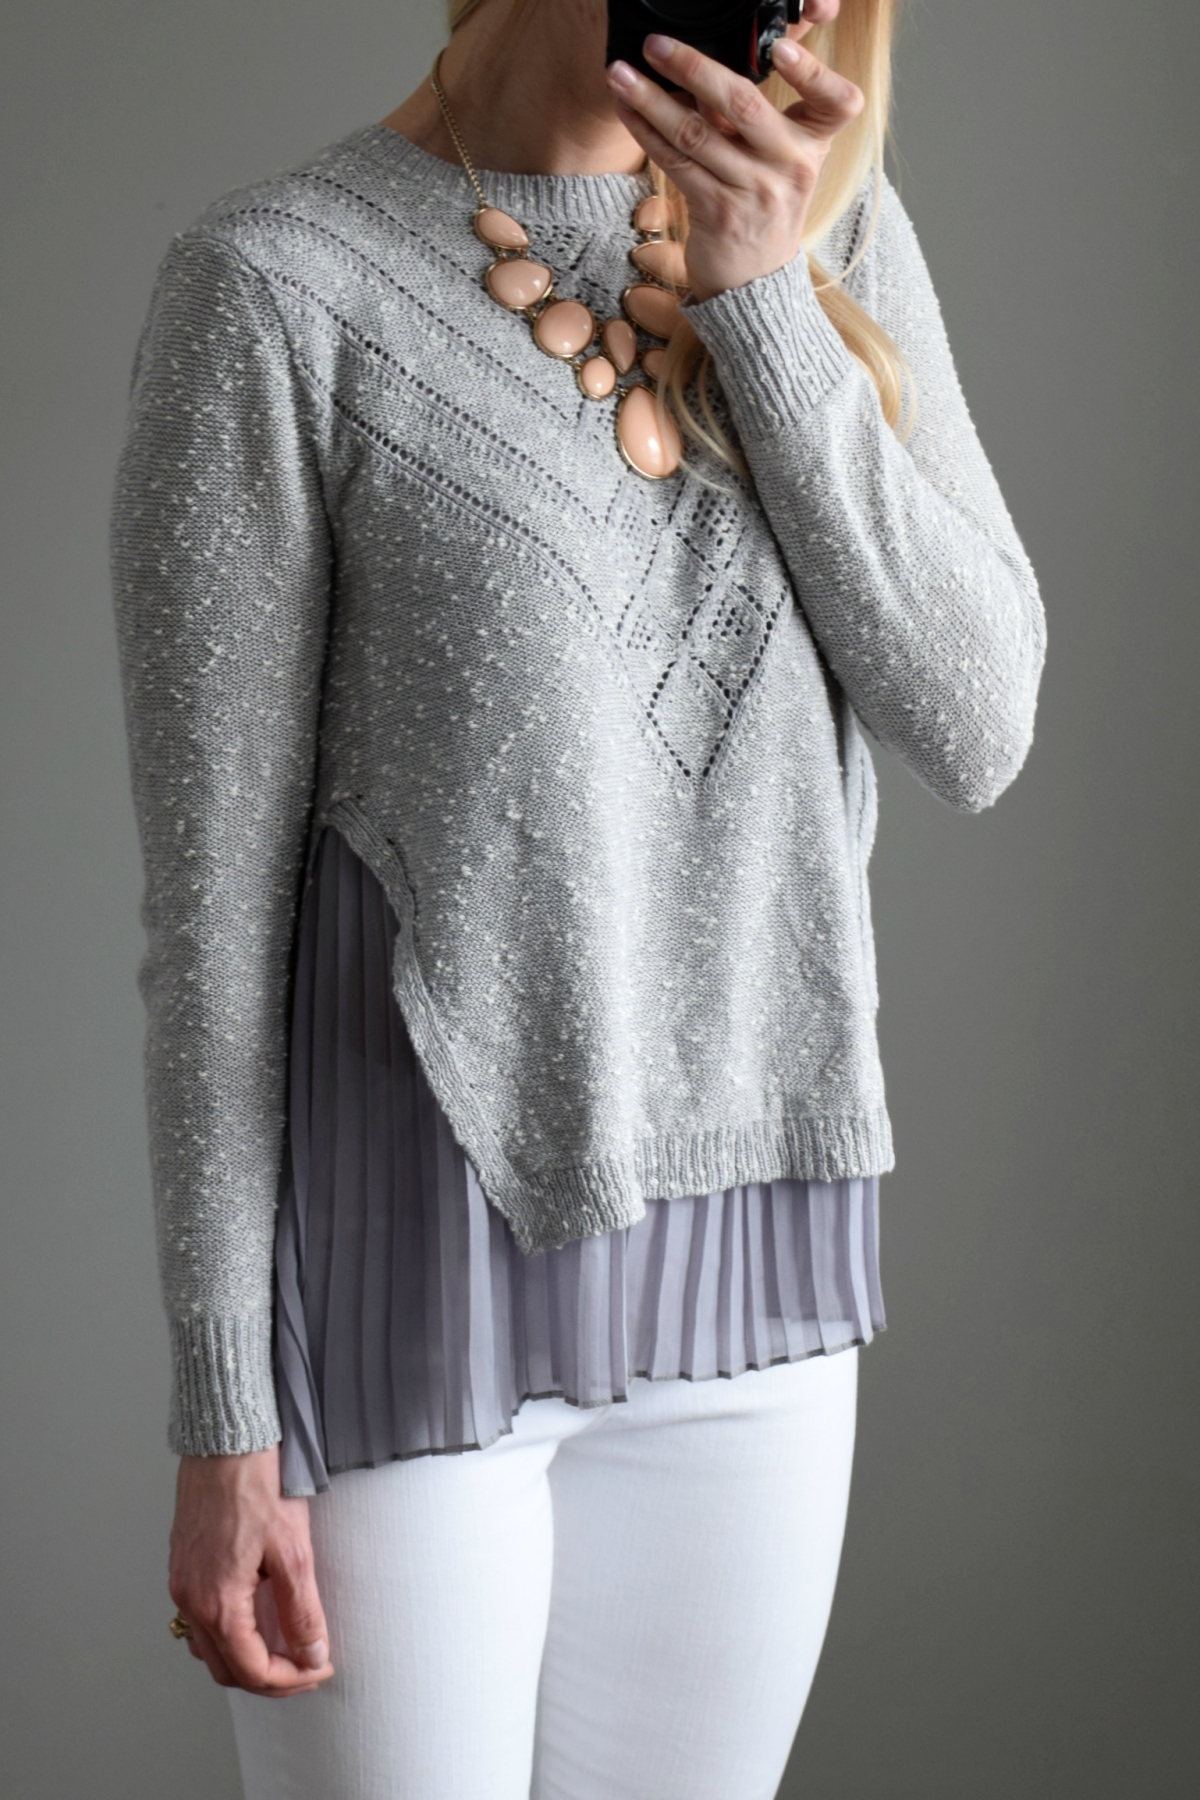 Stitch Fix Review February 2017: Teeberry & Weave Joella Pleated Mixed Material Pullover |www.pearlsandsportsbras.com|